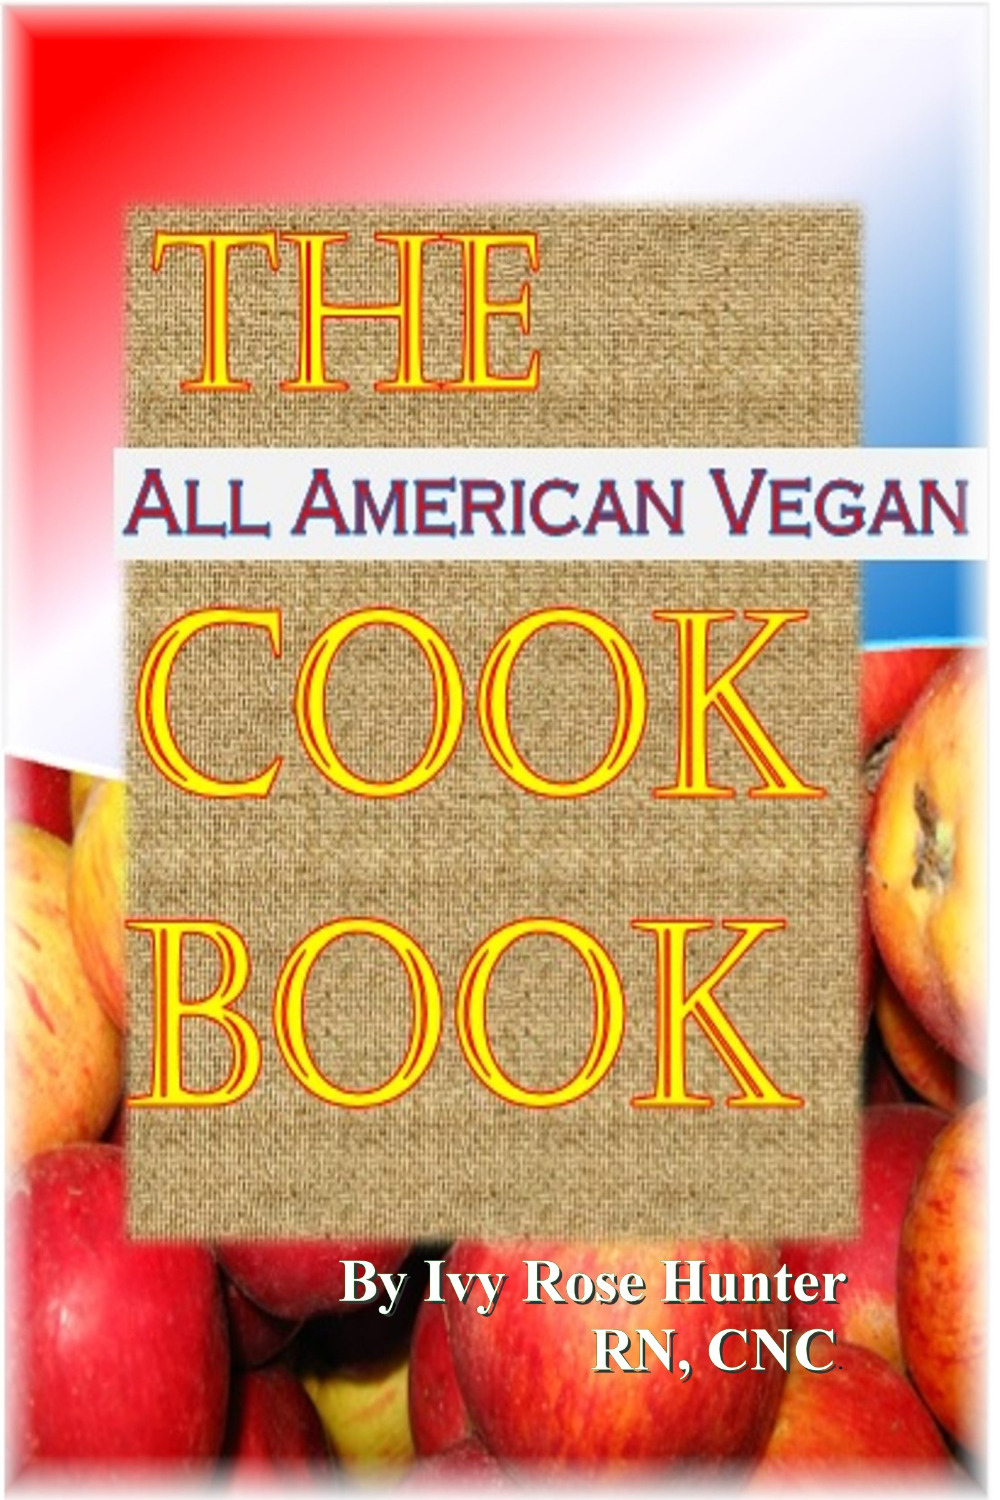 The All American  Vegan Cook Book by Ivy Hunter RN., CNC. Holistic Nutrition Counselor